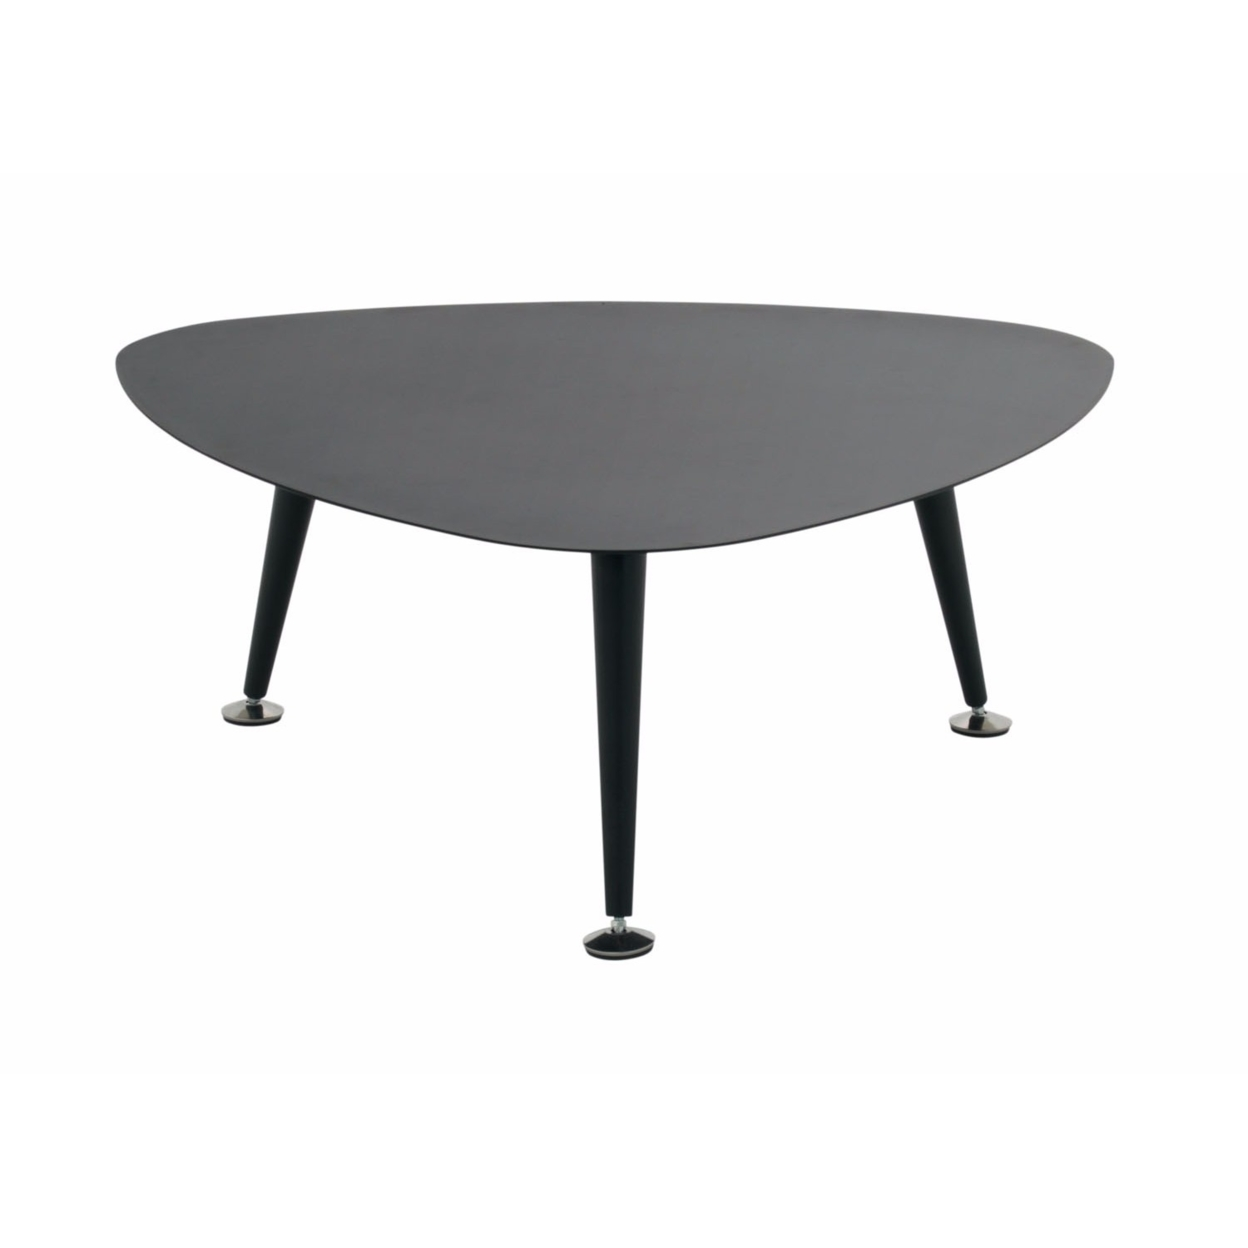 Offex Trilateral Accent Table 29, Black (4)